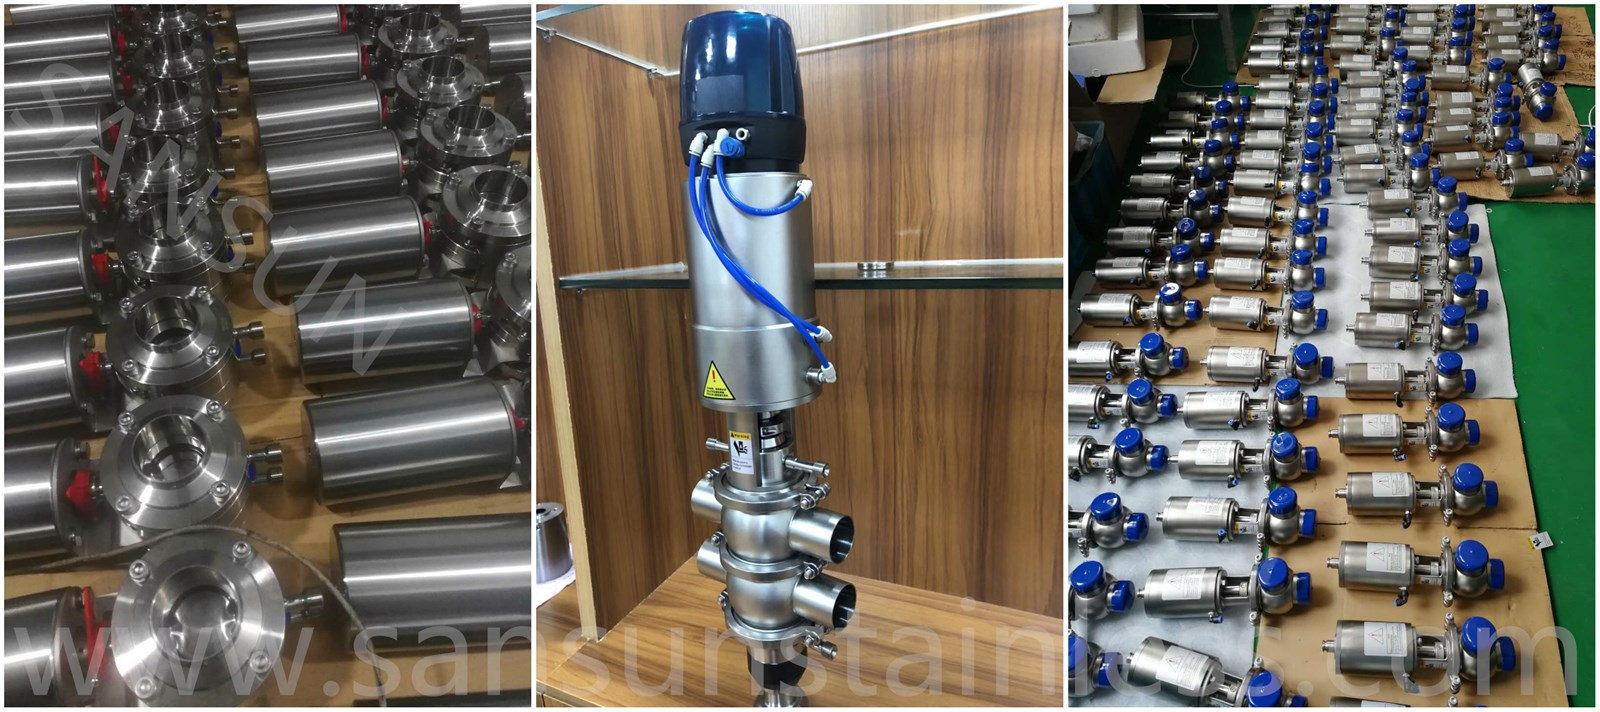 Sanitary Stainless Steel Food Grade Hygienic Pneumatic Welded Butterfly Control Valve with Blue CTop